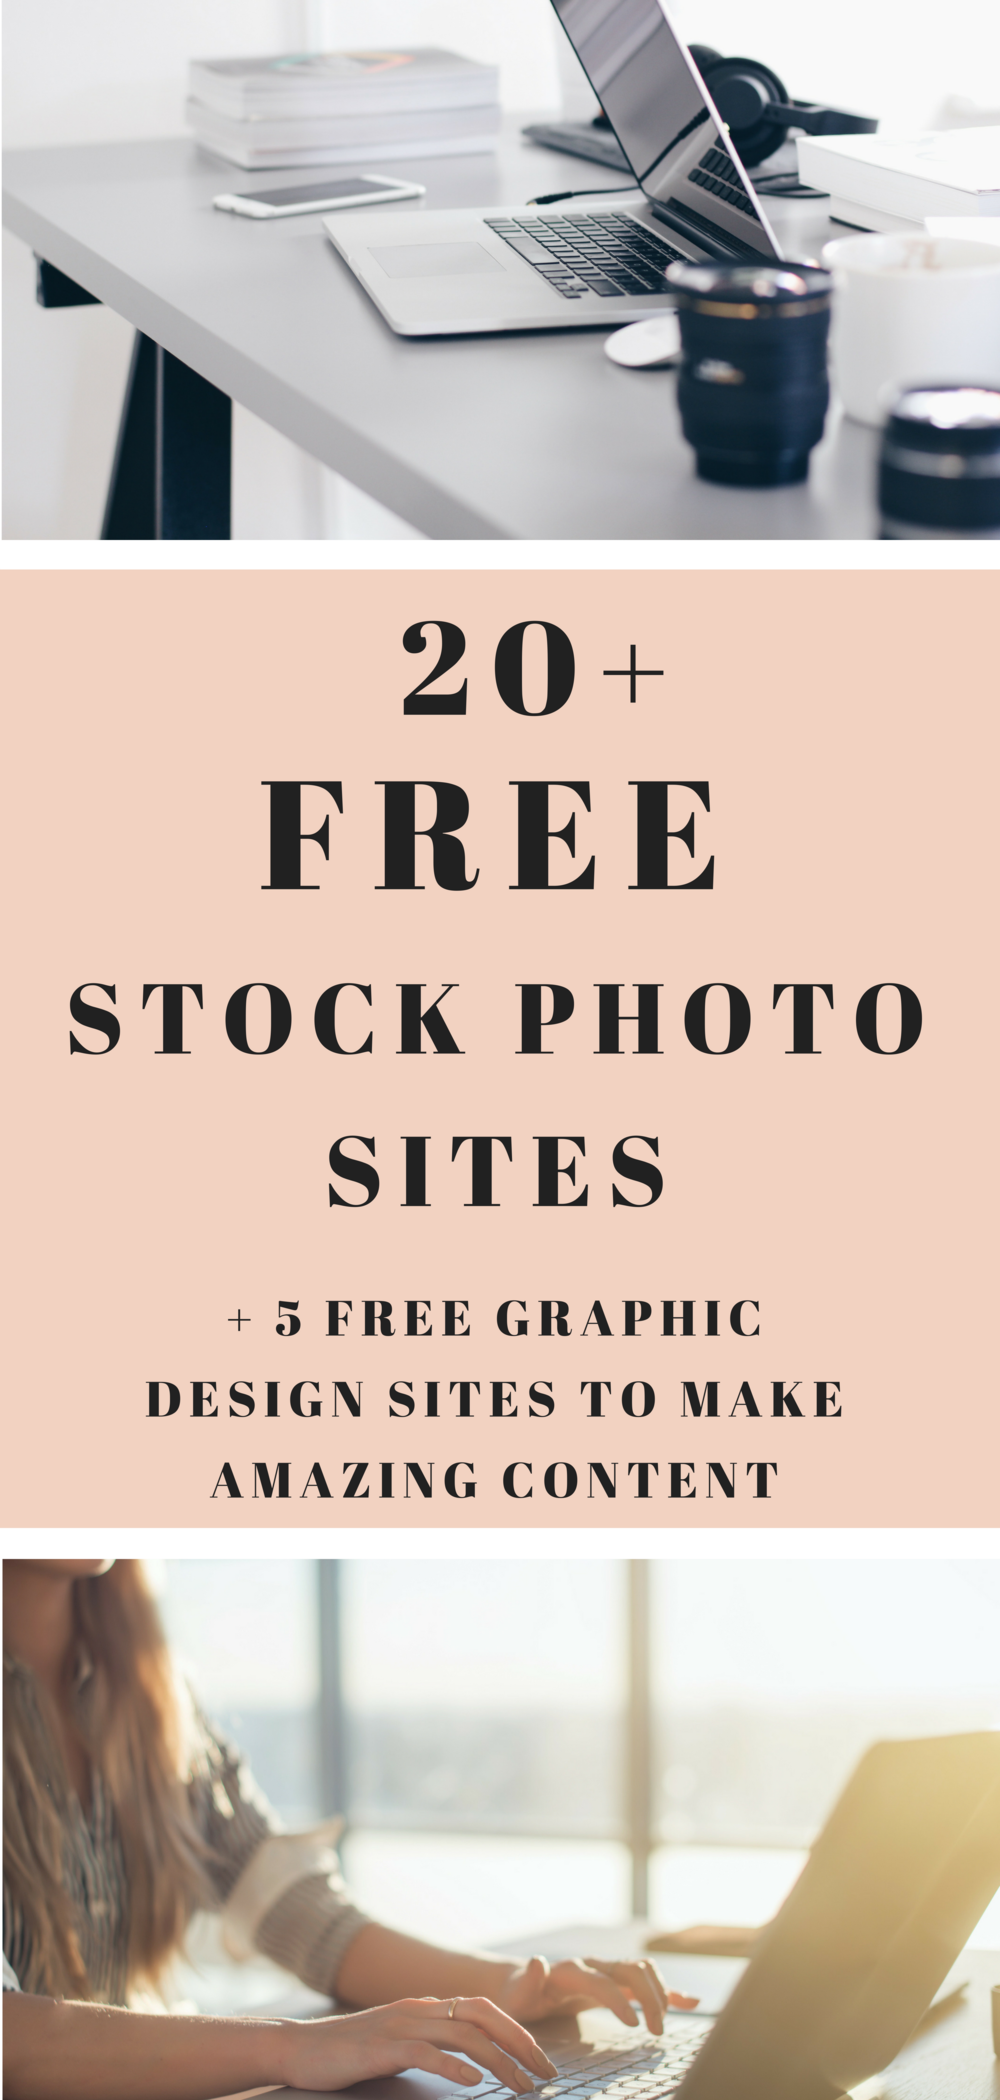 FREE list of stock photo sites and graphic design software to rock your blog and business.  Take your creativity to the next level for no cost at all! #marketing #creating #bloggingtips